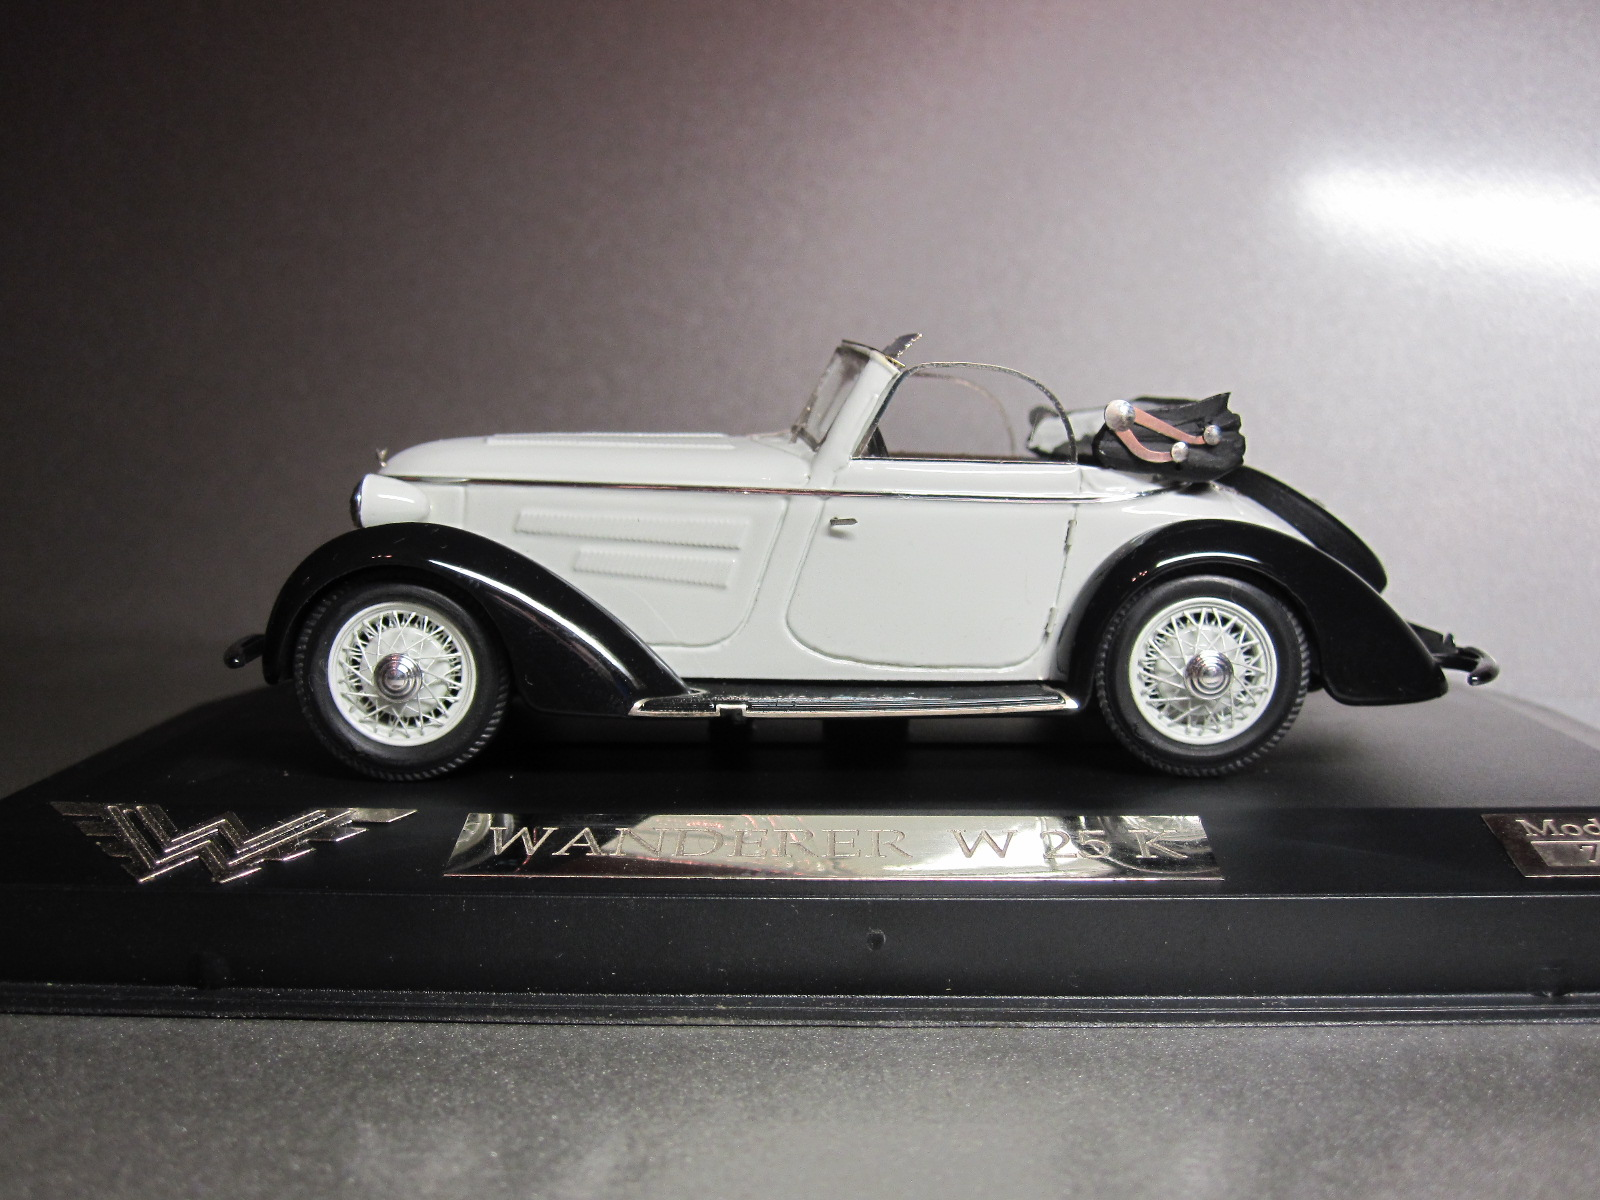 ZZ Model: 1936 Wanderer W 25K Cabriolet White-Black (70/100) in 1:43 scale . Picture provided by Aleksandr (Desdemona), 2010-06-08 15:02:08